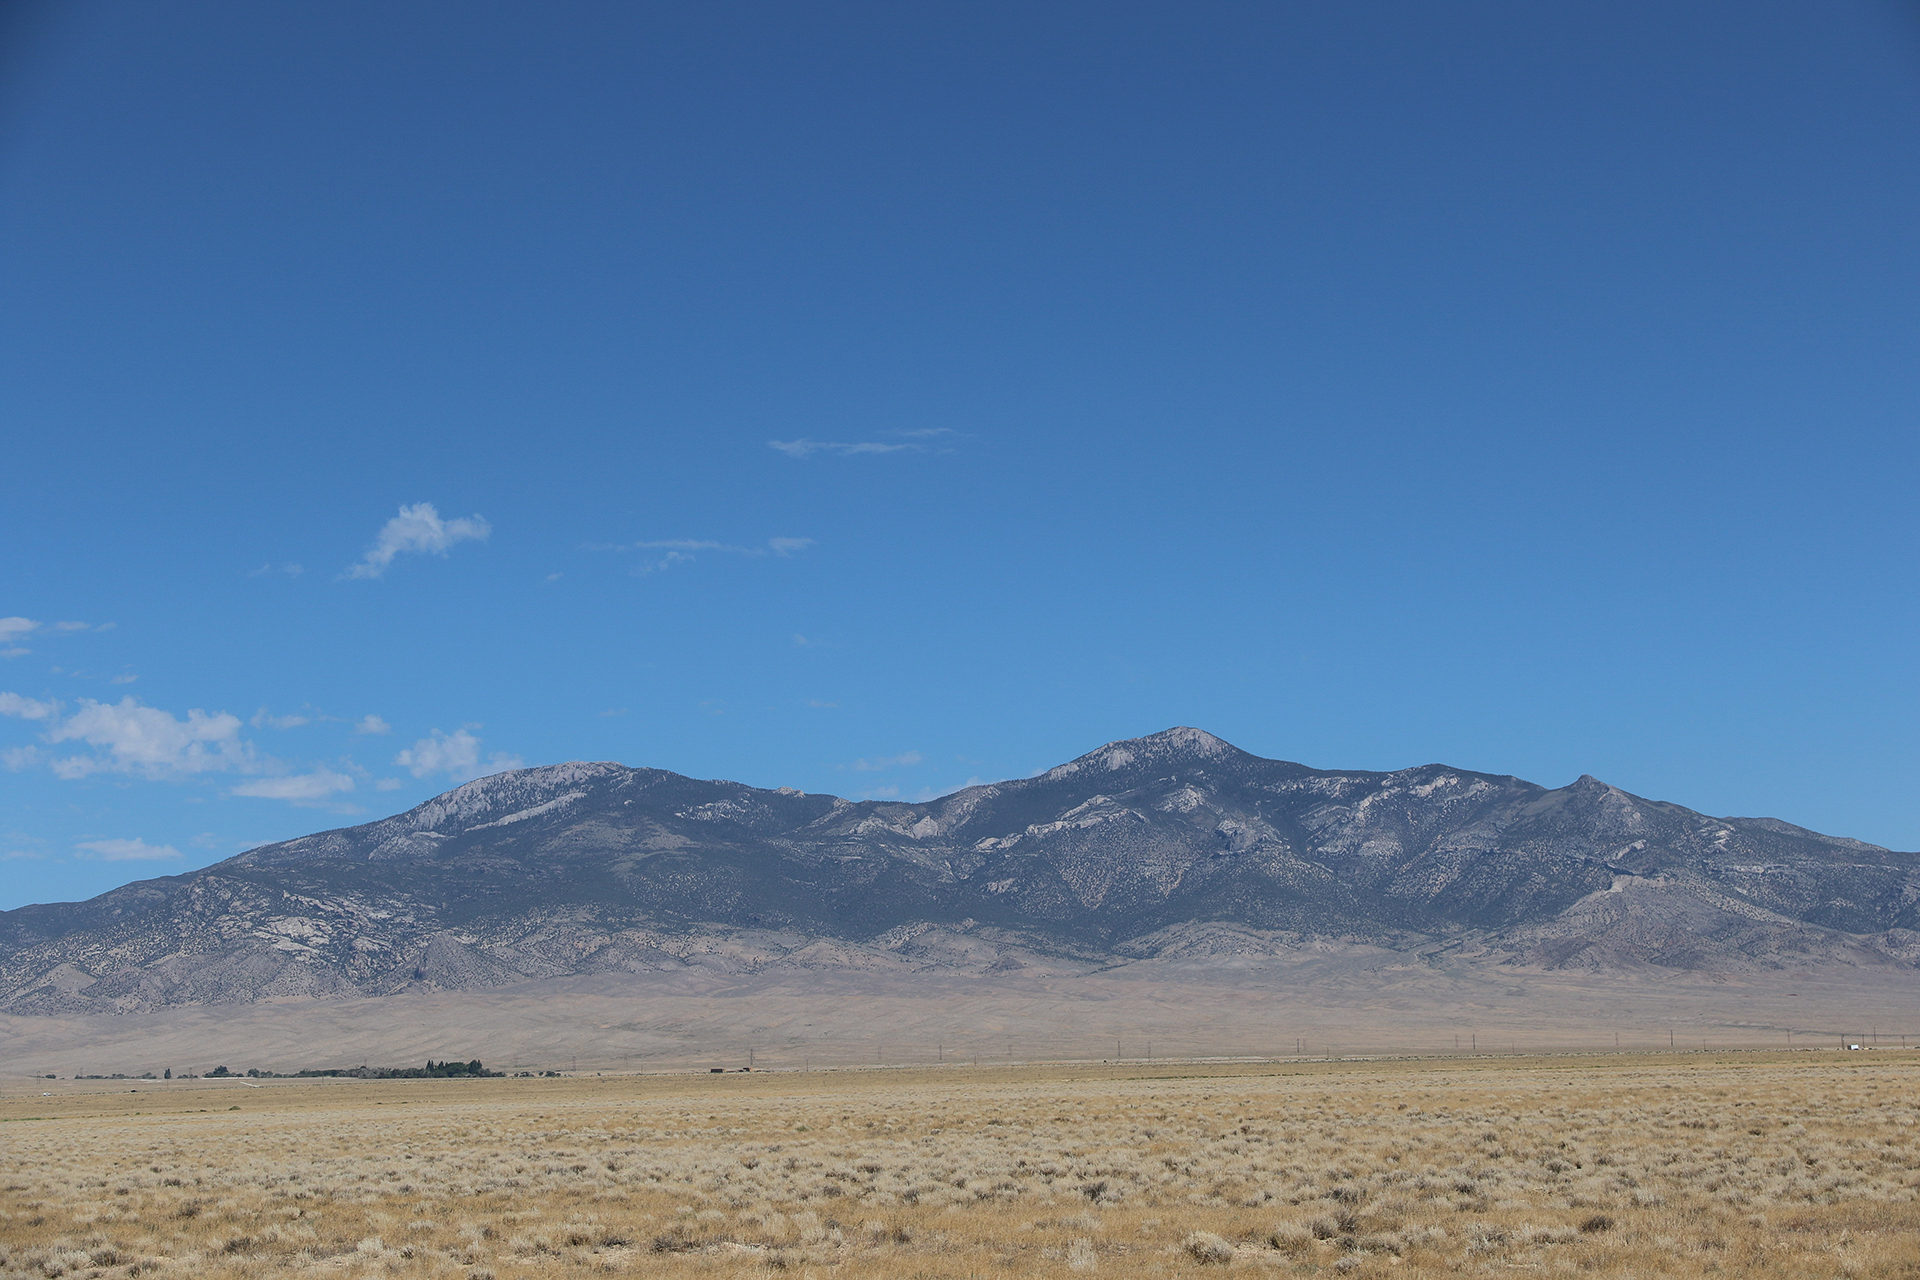 GreatBasin-561